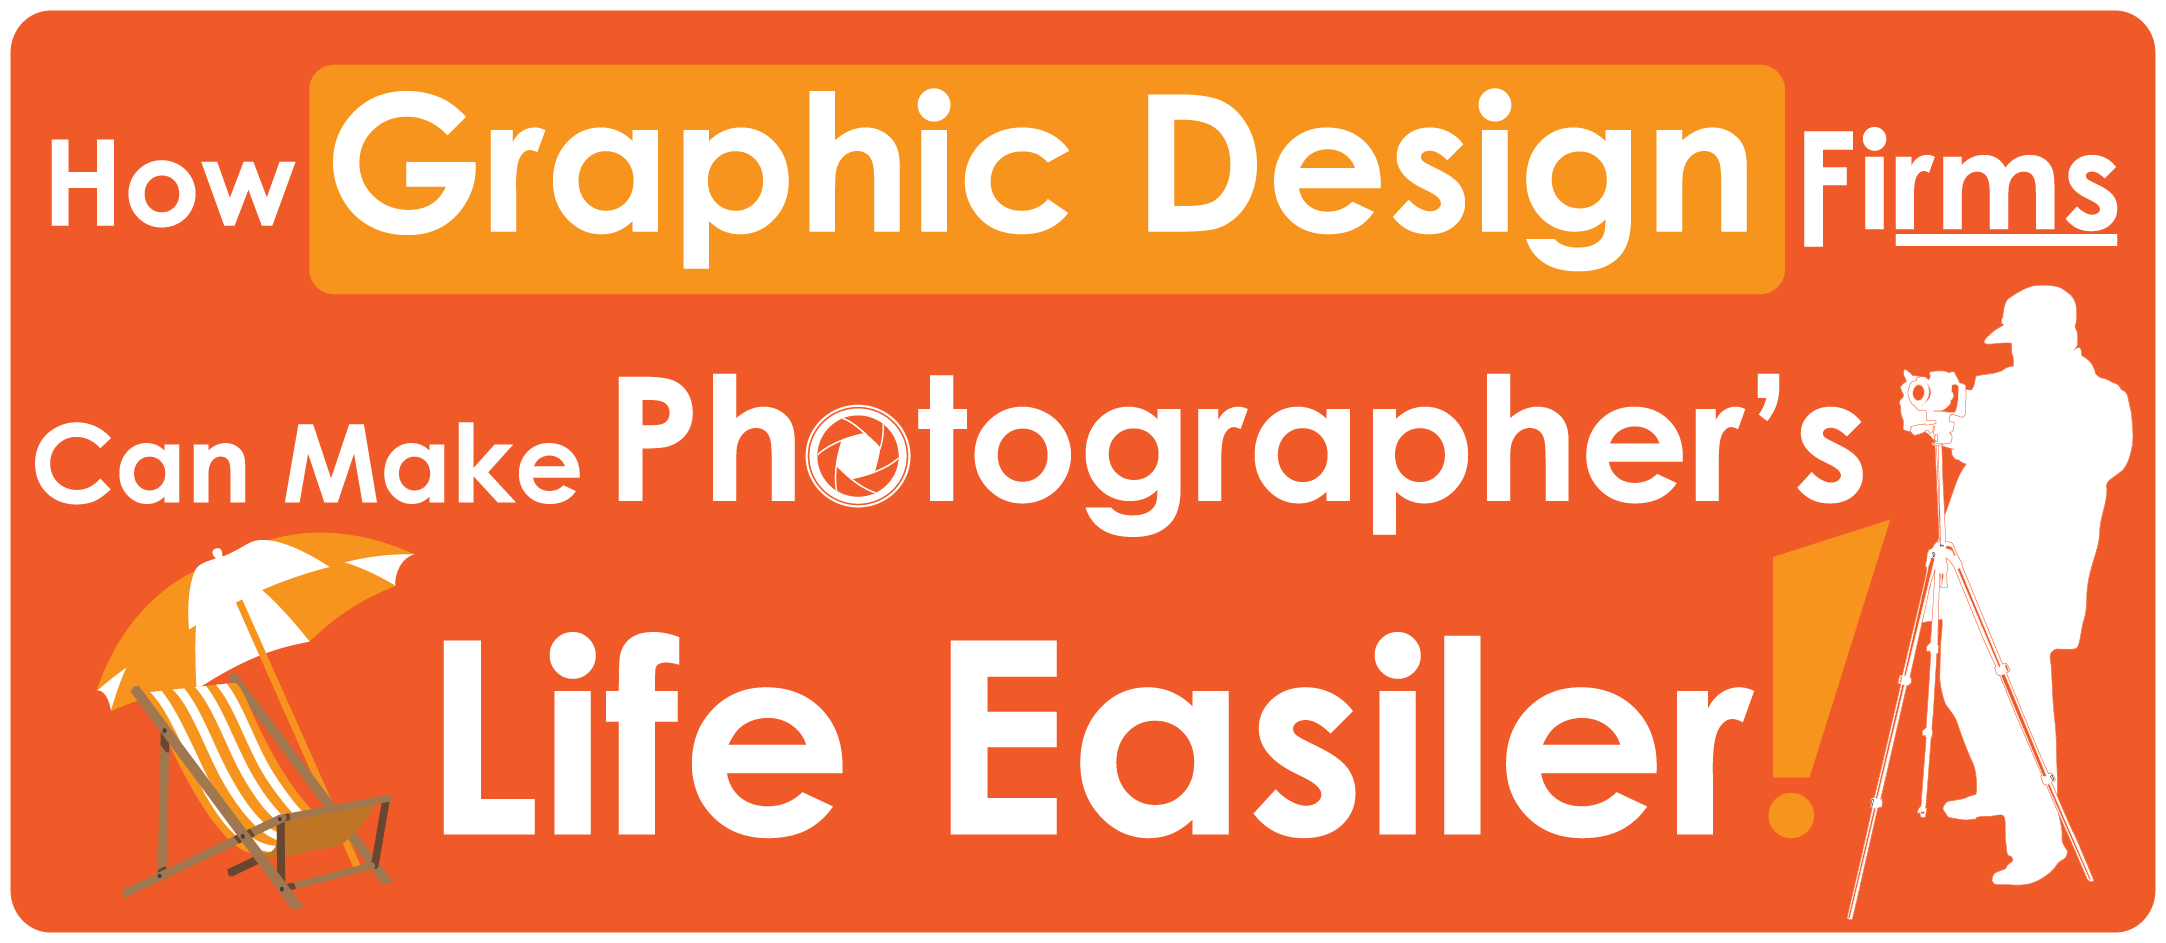 Graphic design firms can make photographer 39 s life easier for Design firma